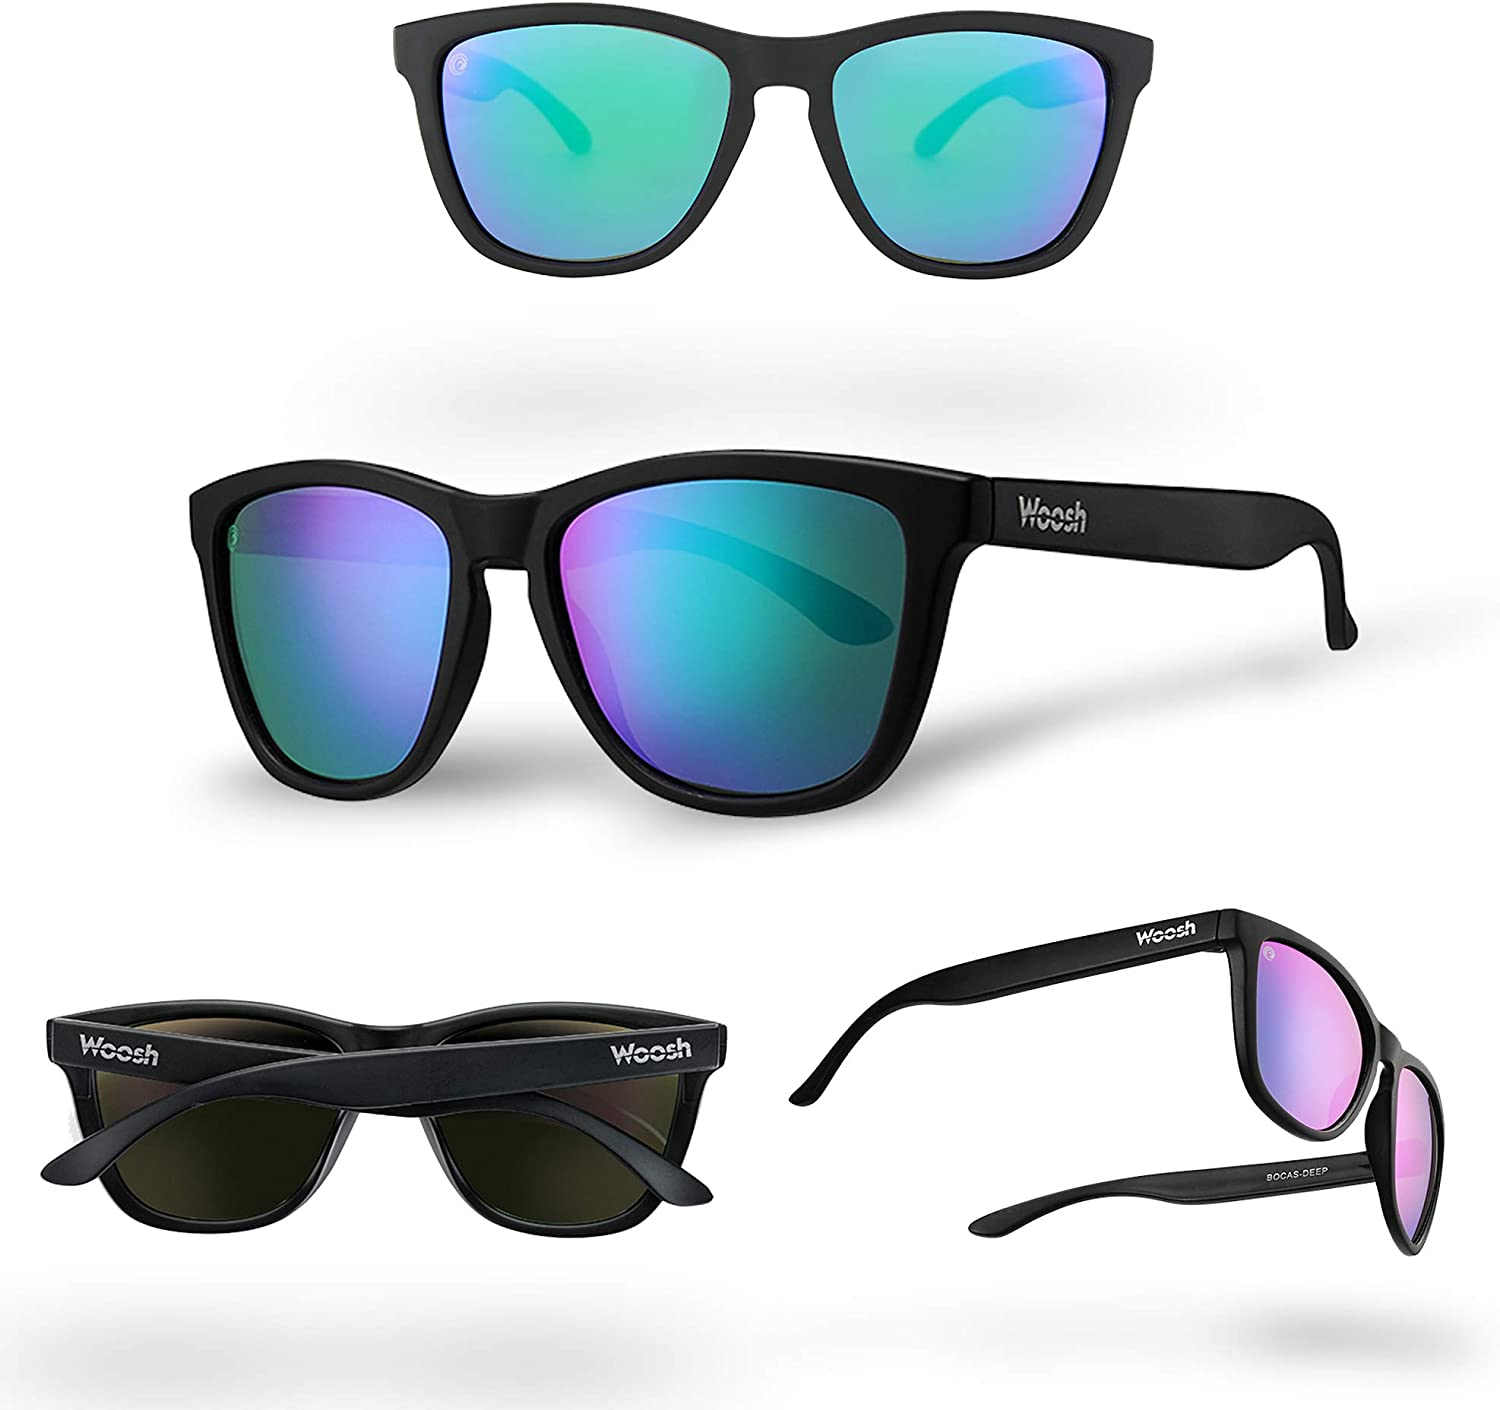 WOOSH Polarized Lightweight Sunglasses for Men and Women -Unisex Sunnies for Fishing, Beach Running, Sports and Outdoors